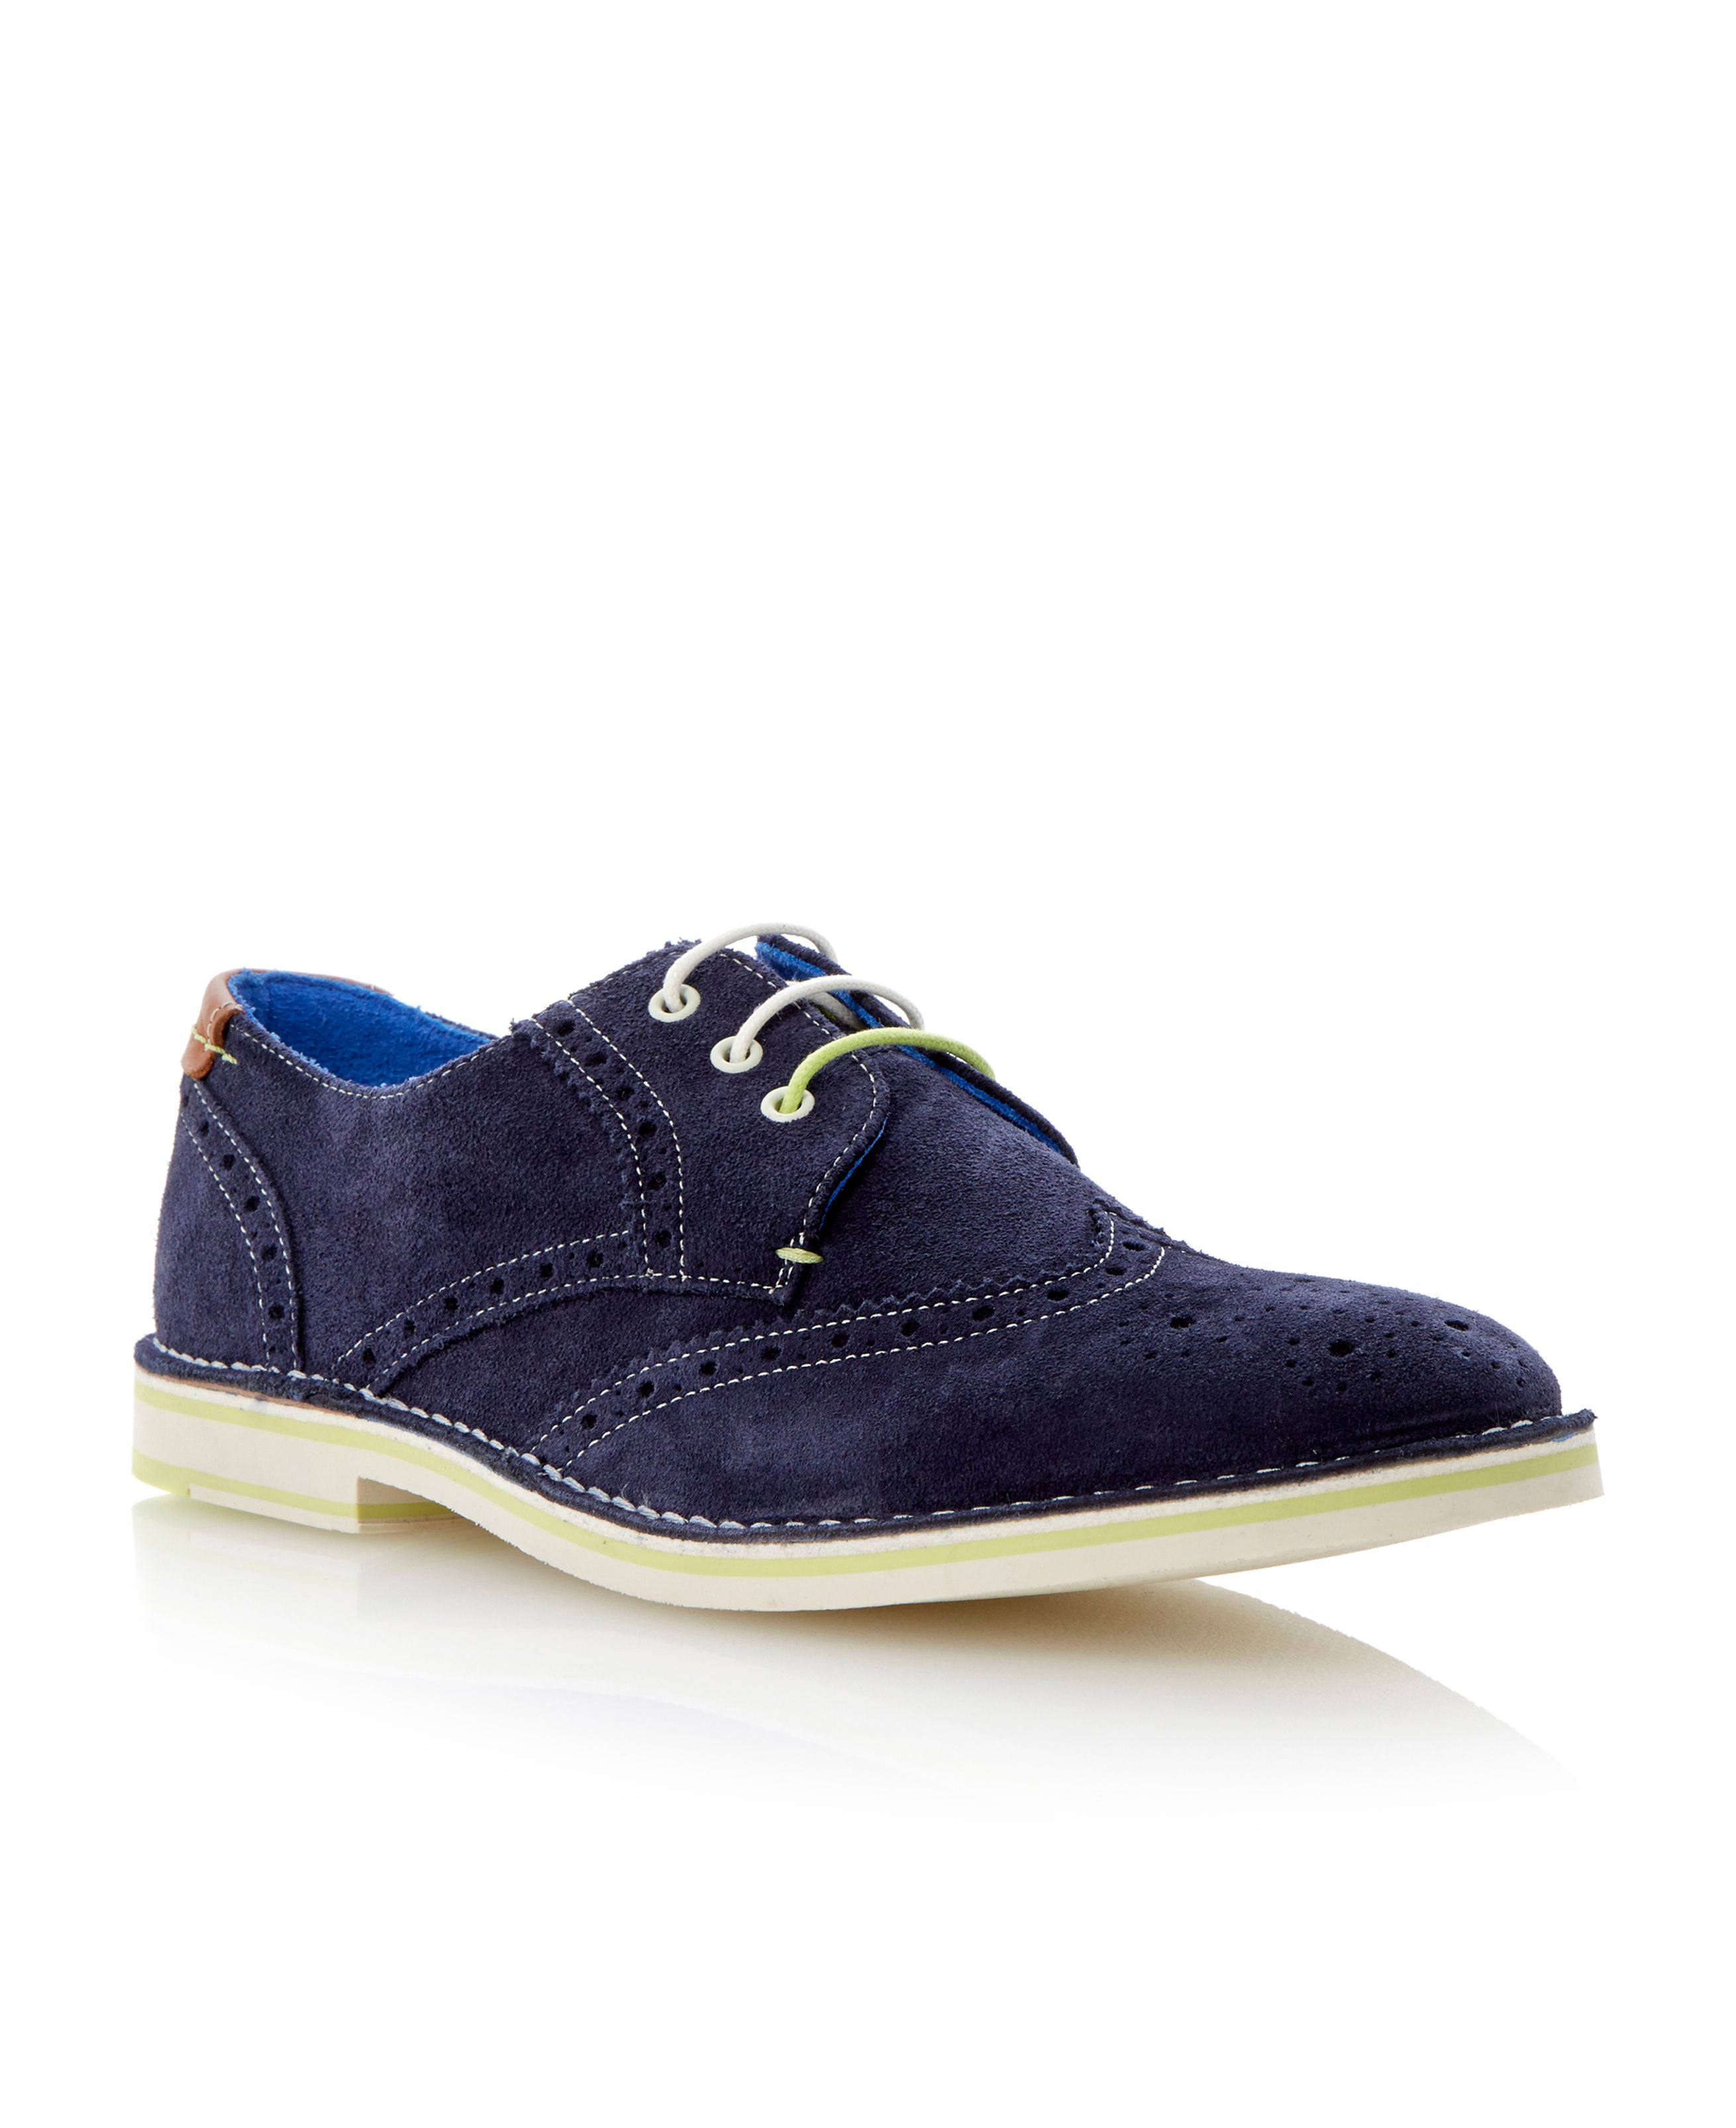 Jamfro 3 lace up brogue desert shoes